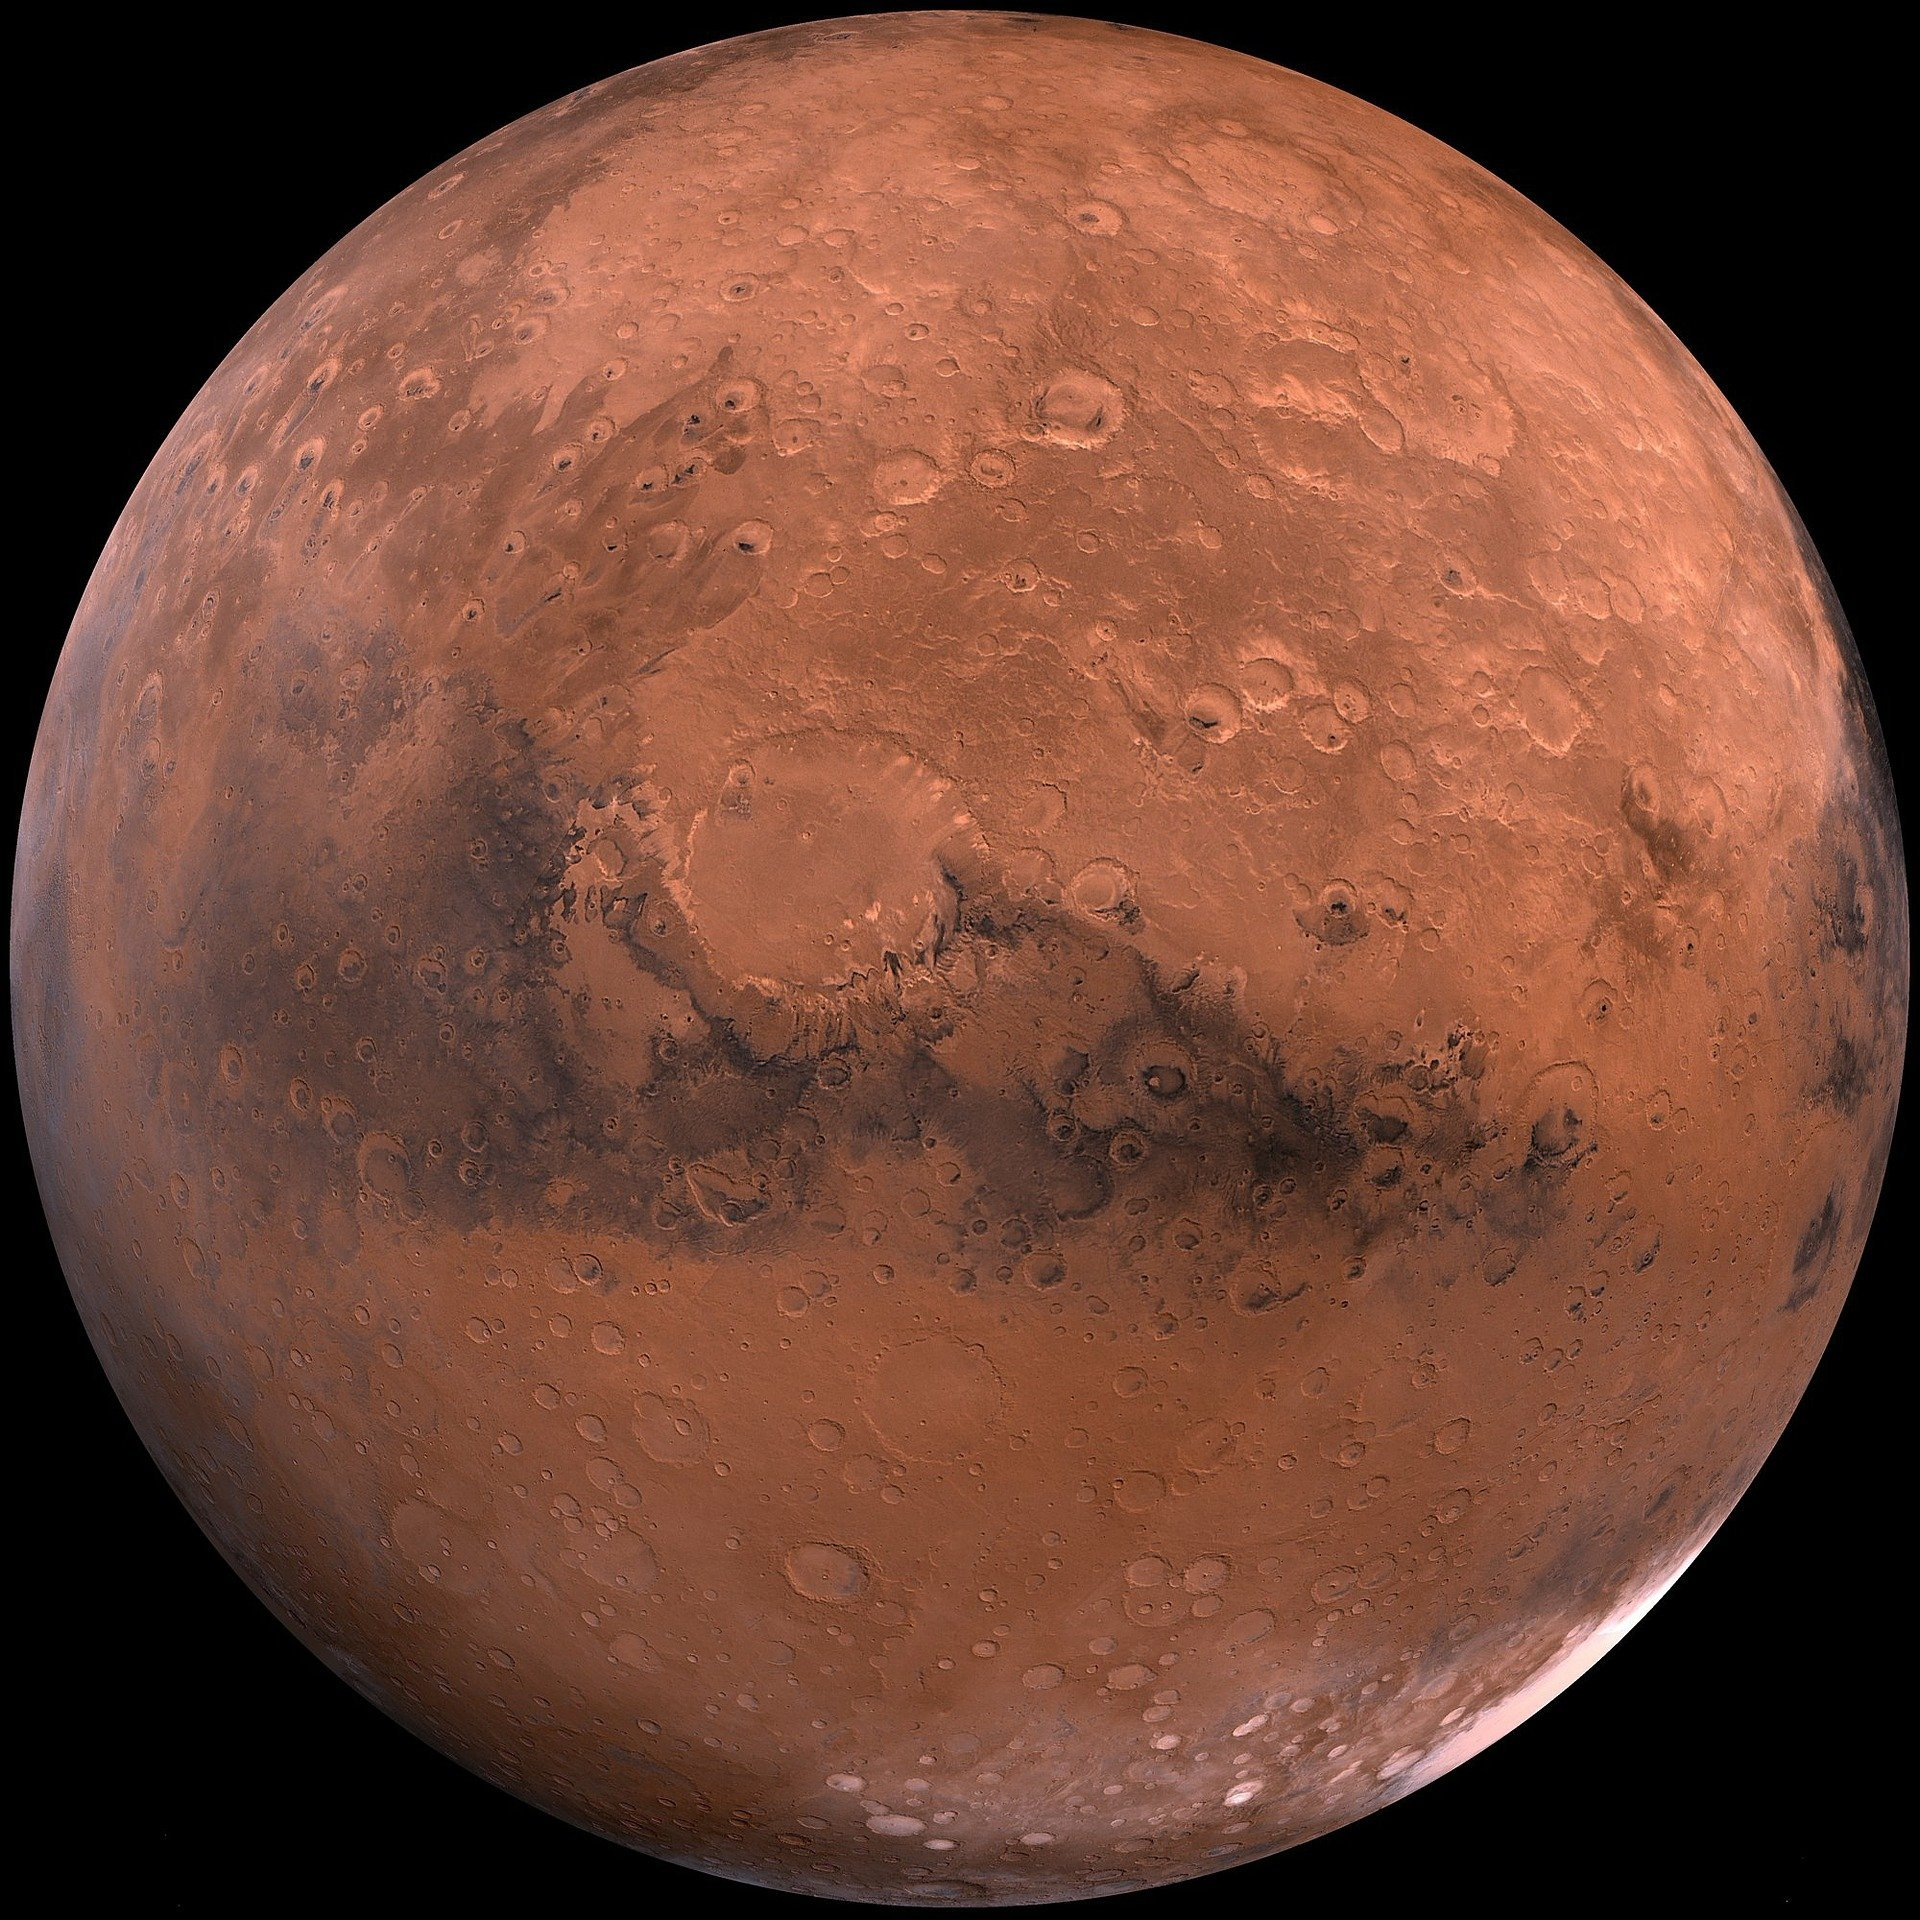 A close-up photograph of the planet Mars | Photo:Pixabay/WikiImages